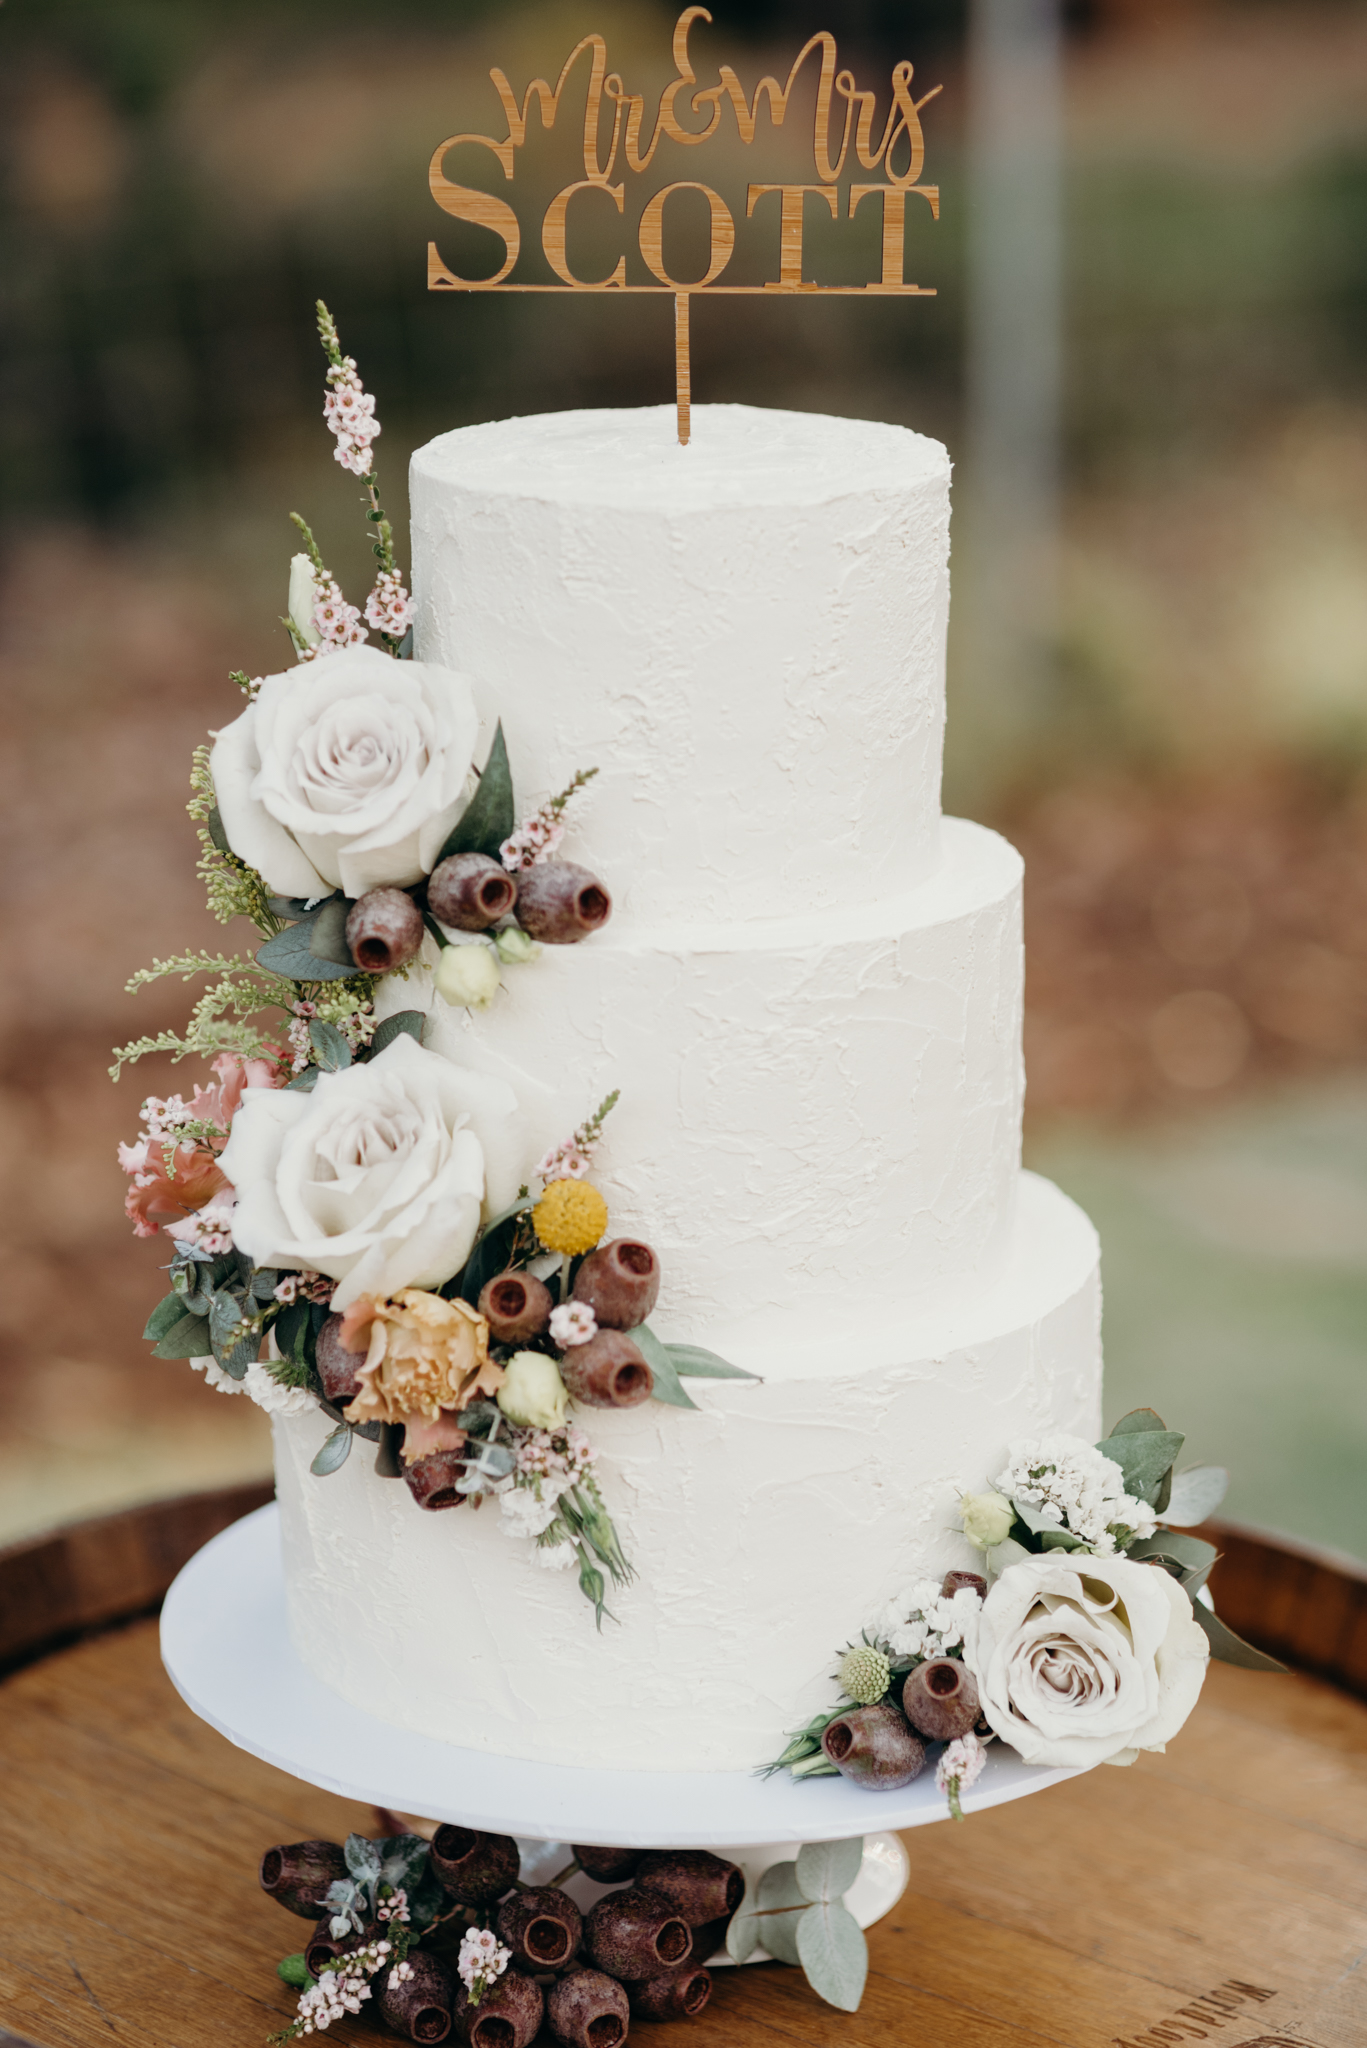 Perth Wedding Cake